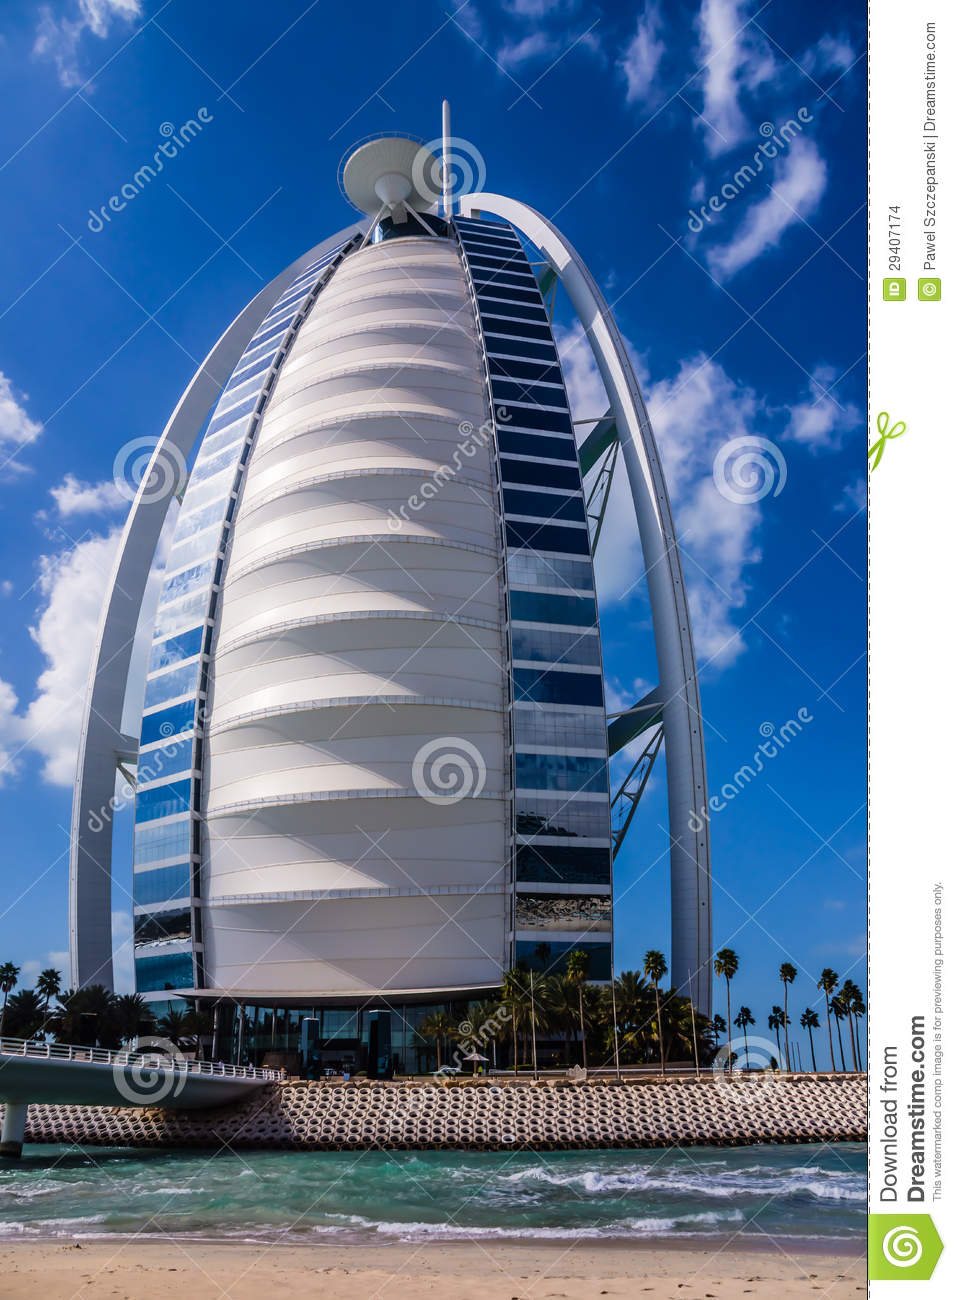 Burj al arab sail shaped hotel editorial stock image for The sail hotel dubai